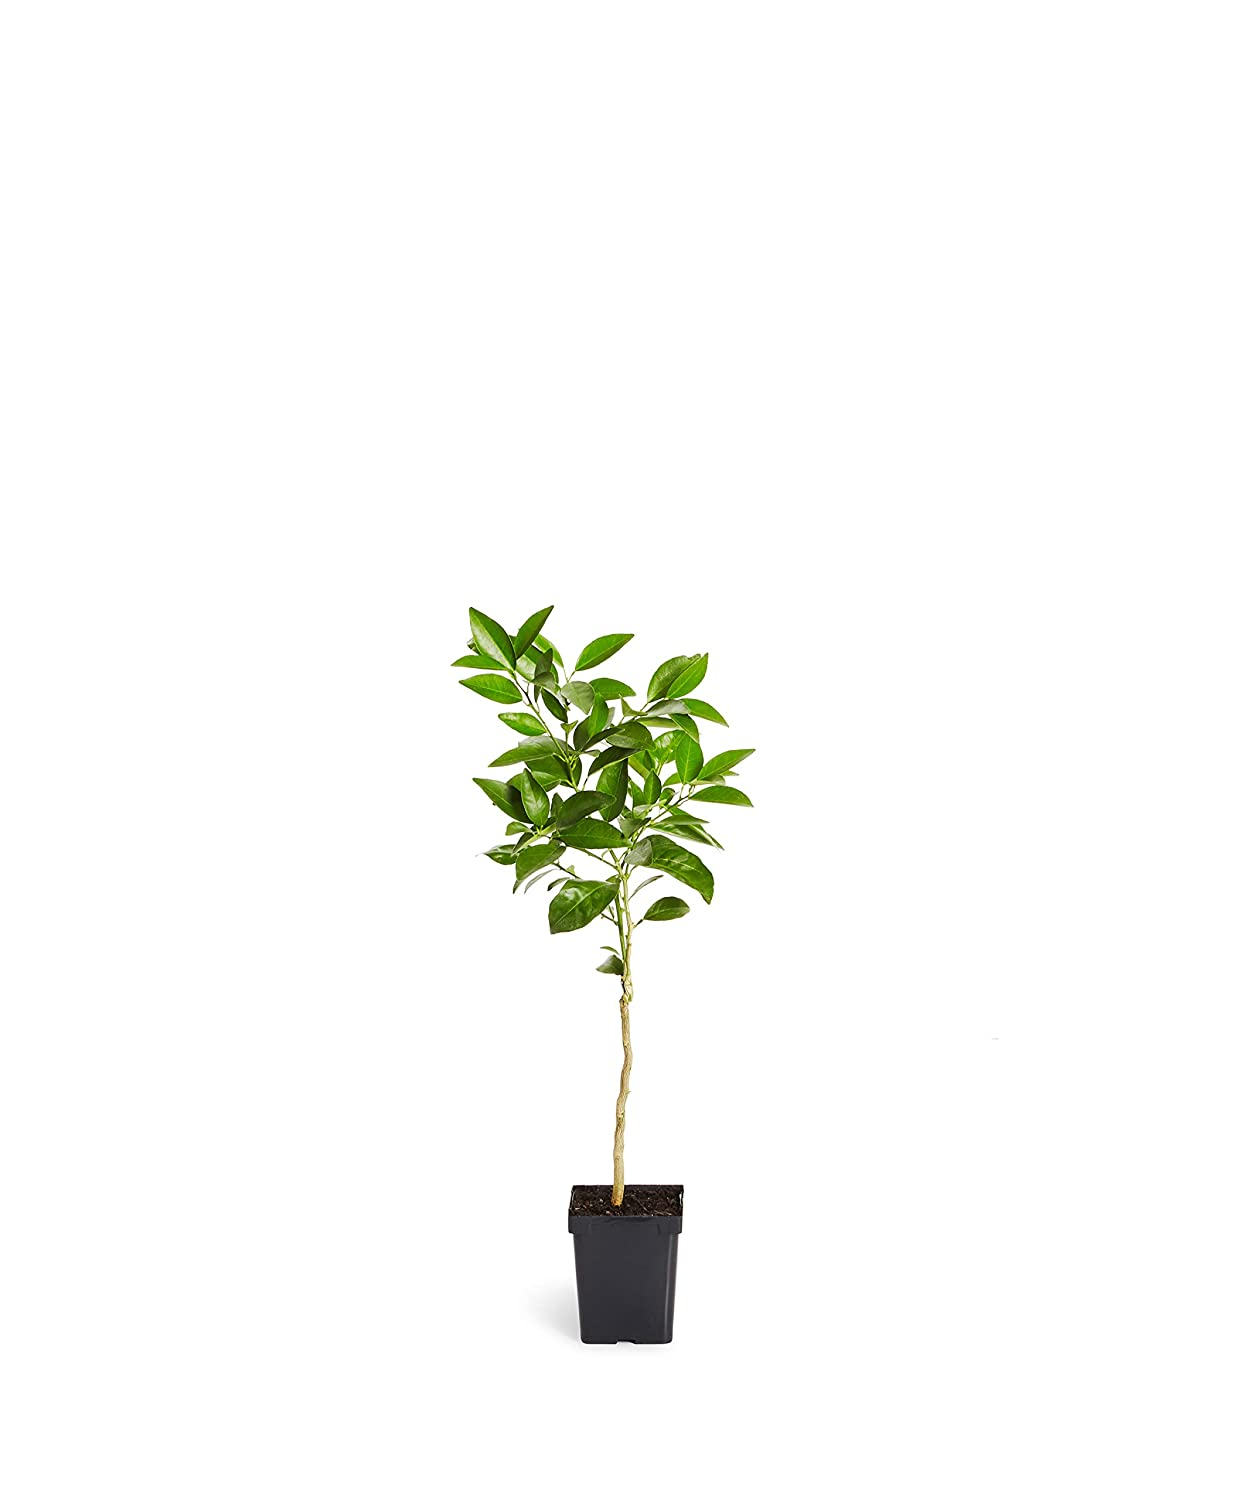 1-2 feet tall Blood Orange Trees - Grow Your Own Oranges with Indoor Citrus Trees Brighter Blooms